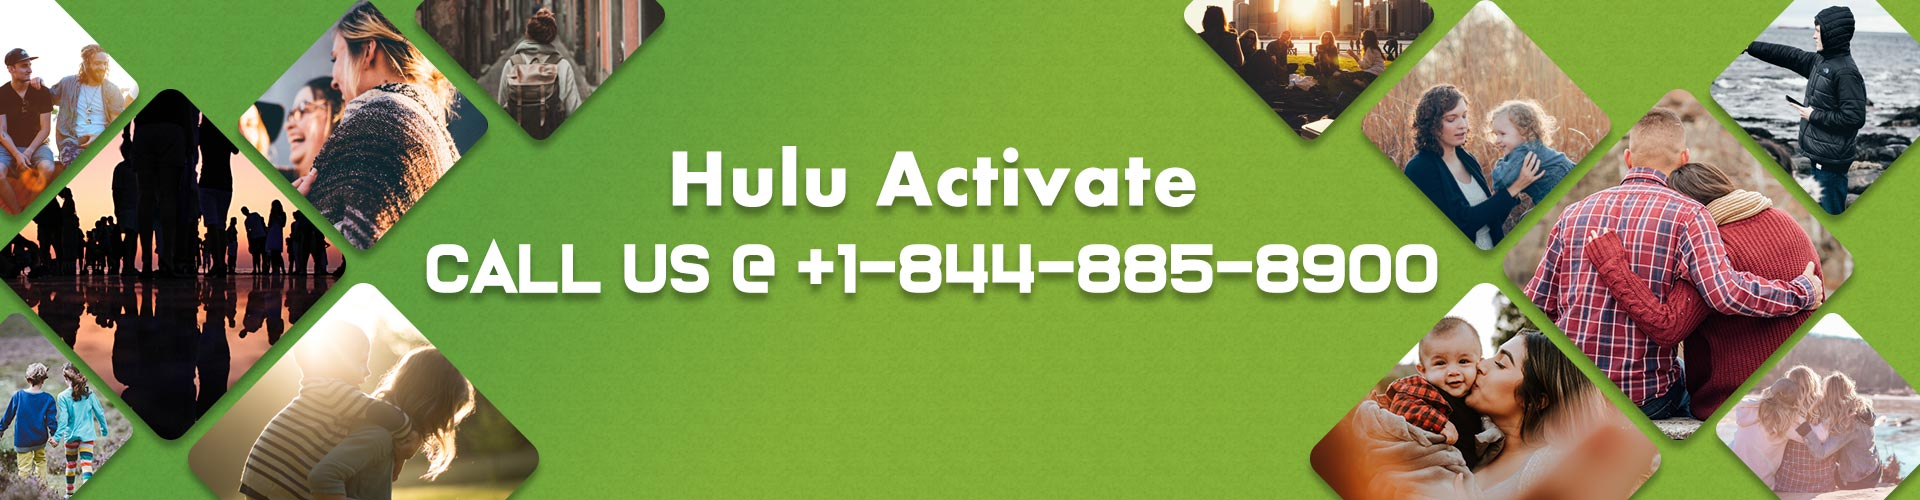 Activate Hulu channel on Roku Using Hulu.com/activate